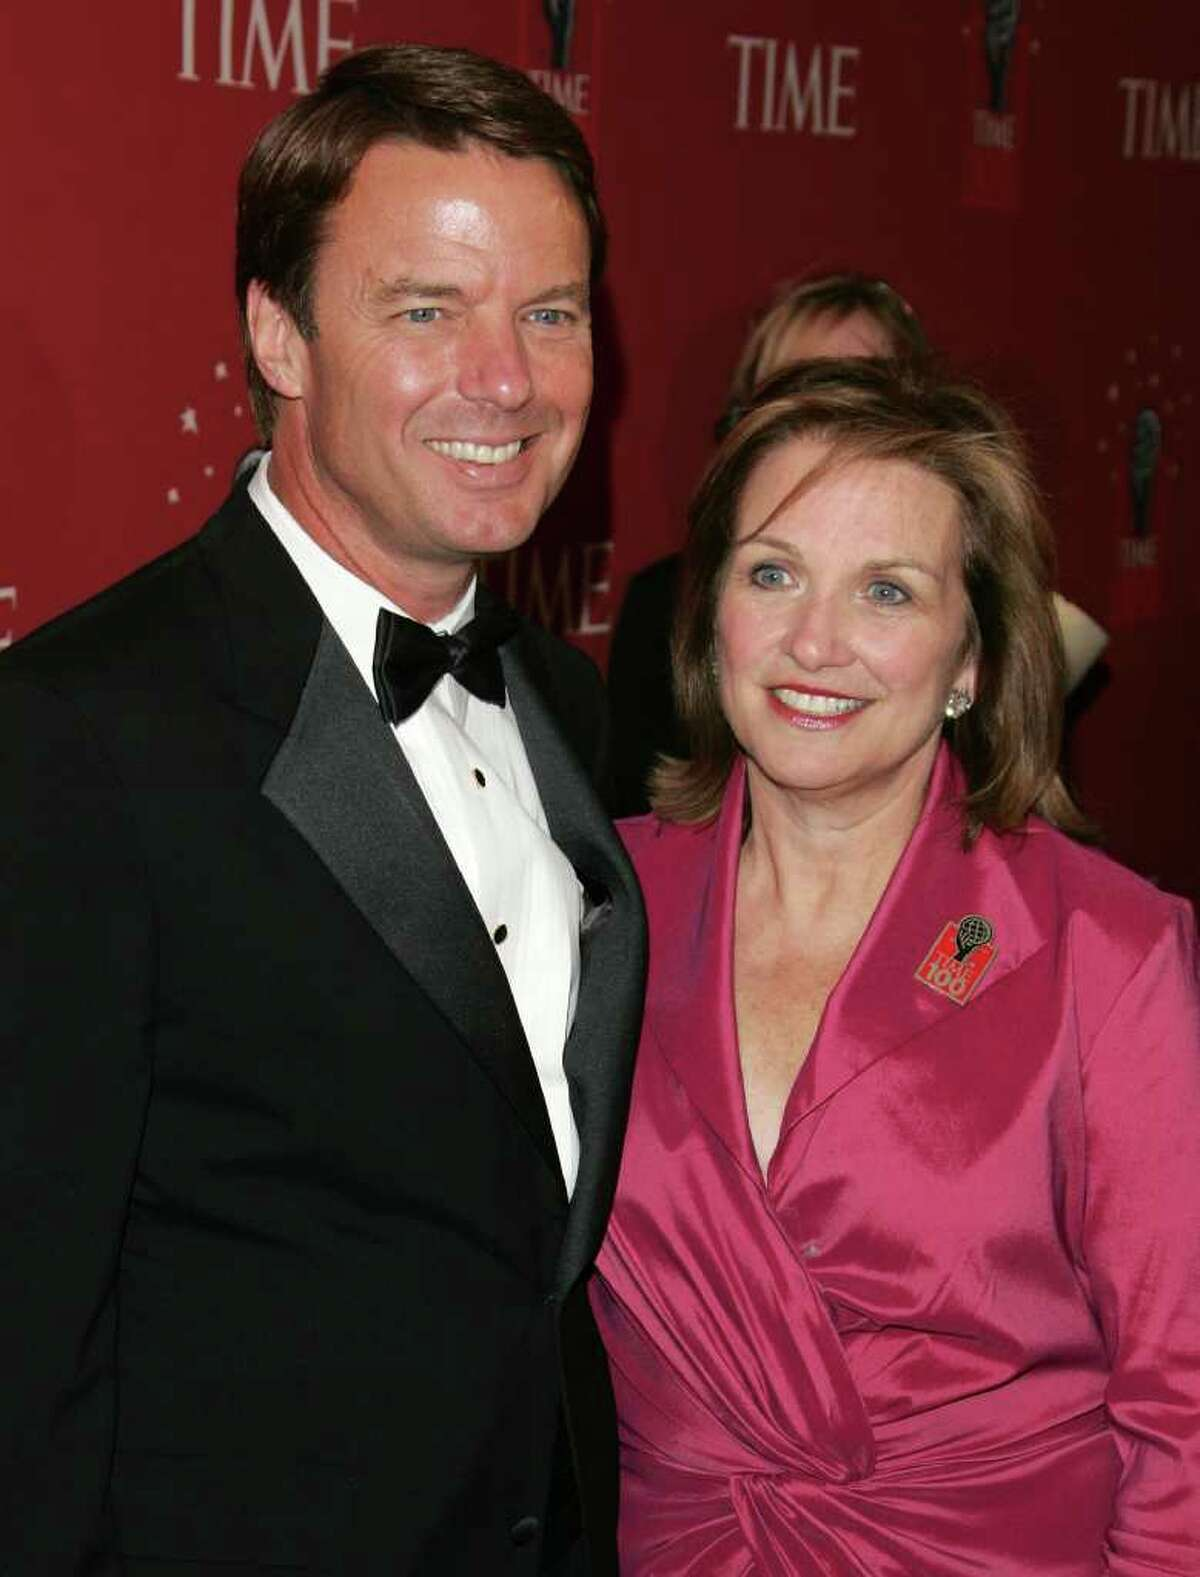 NEW YORK - MAY 08: Senator John Edwards and Elizabeth Edwards attend the Time Magazine's celebration of the 100 most influential people on May 8, 2007 in New York City. (Photo by Peter Kramer/Getty Images) *** Local Caption *** John Edwards;Elizabeth Edwards